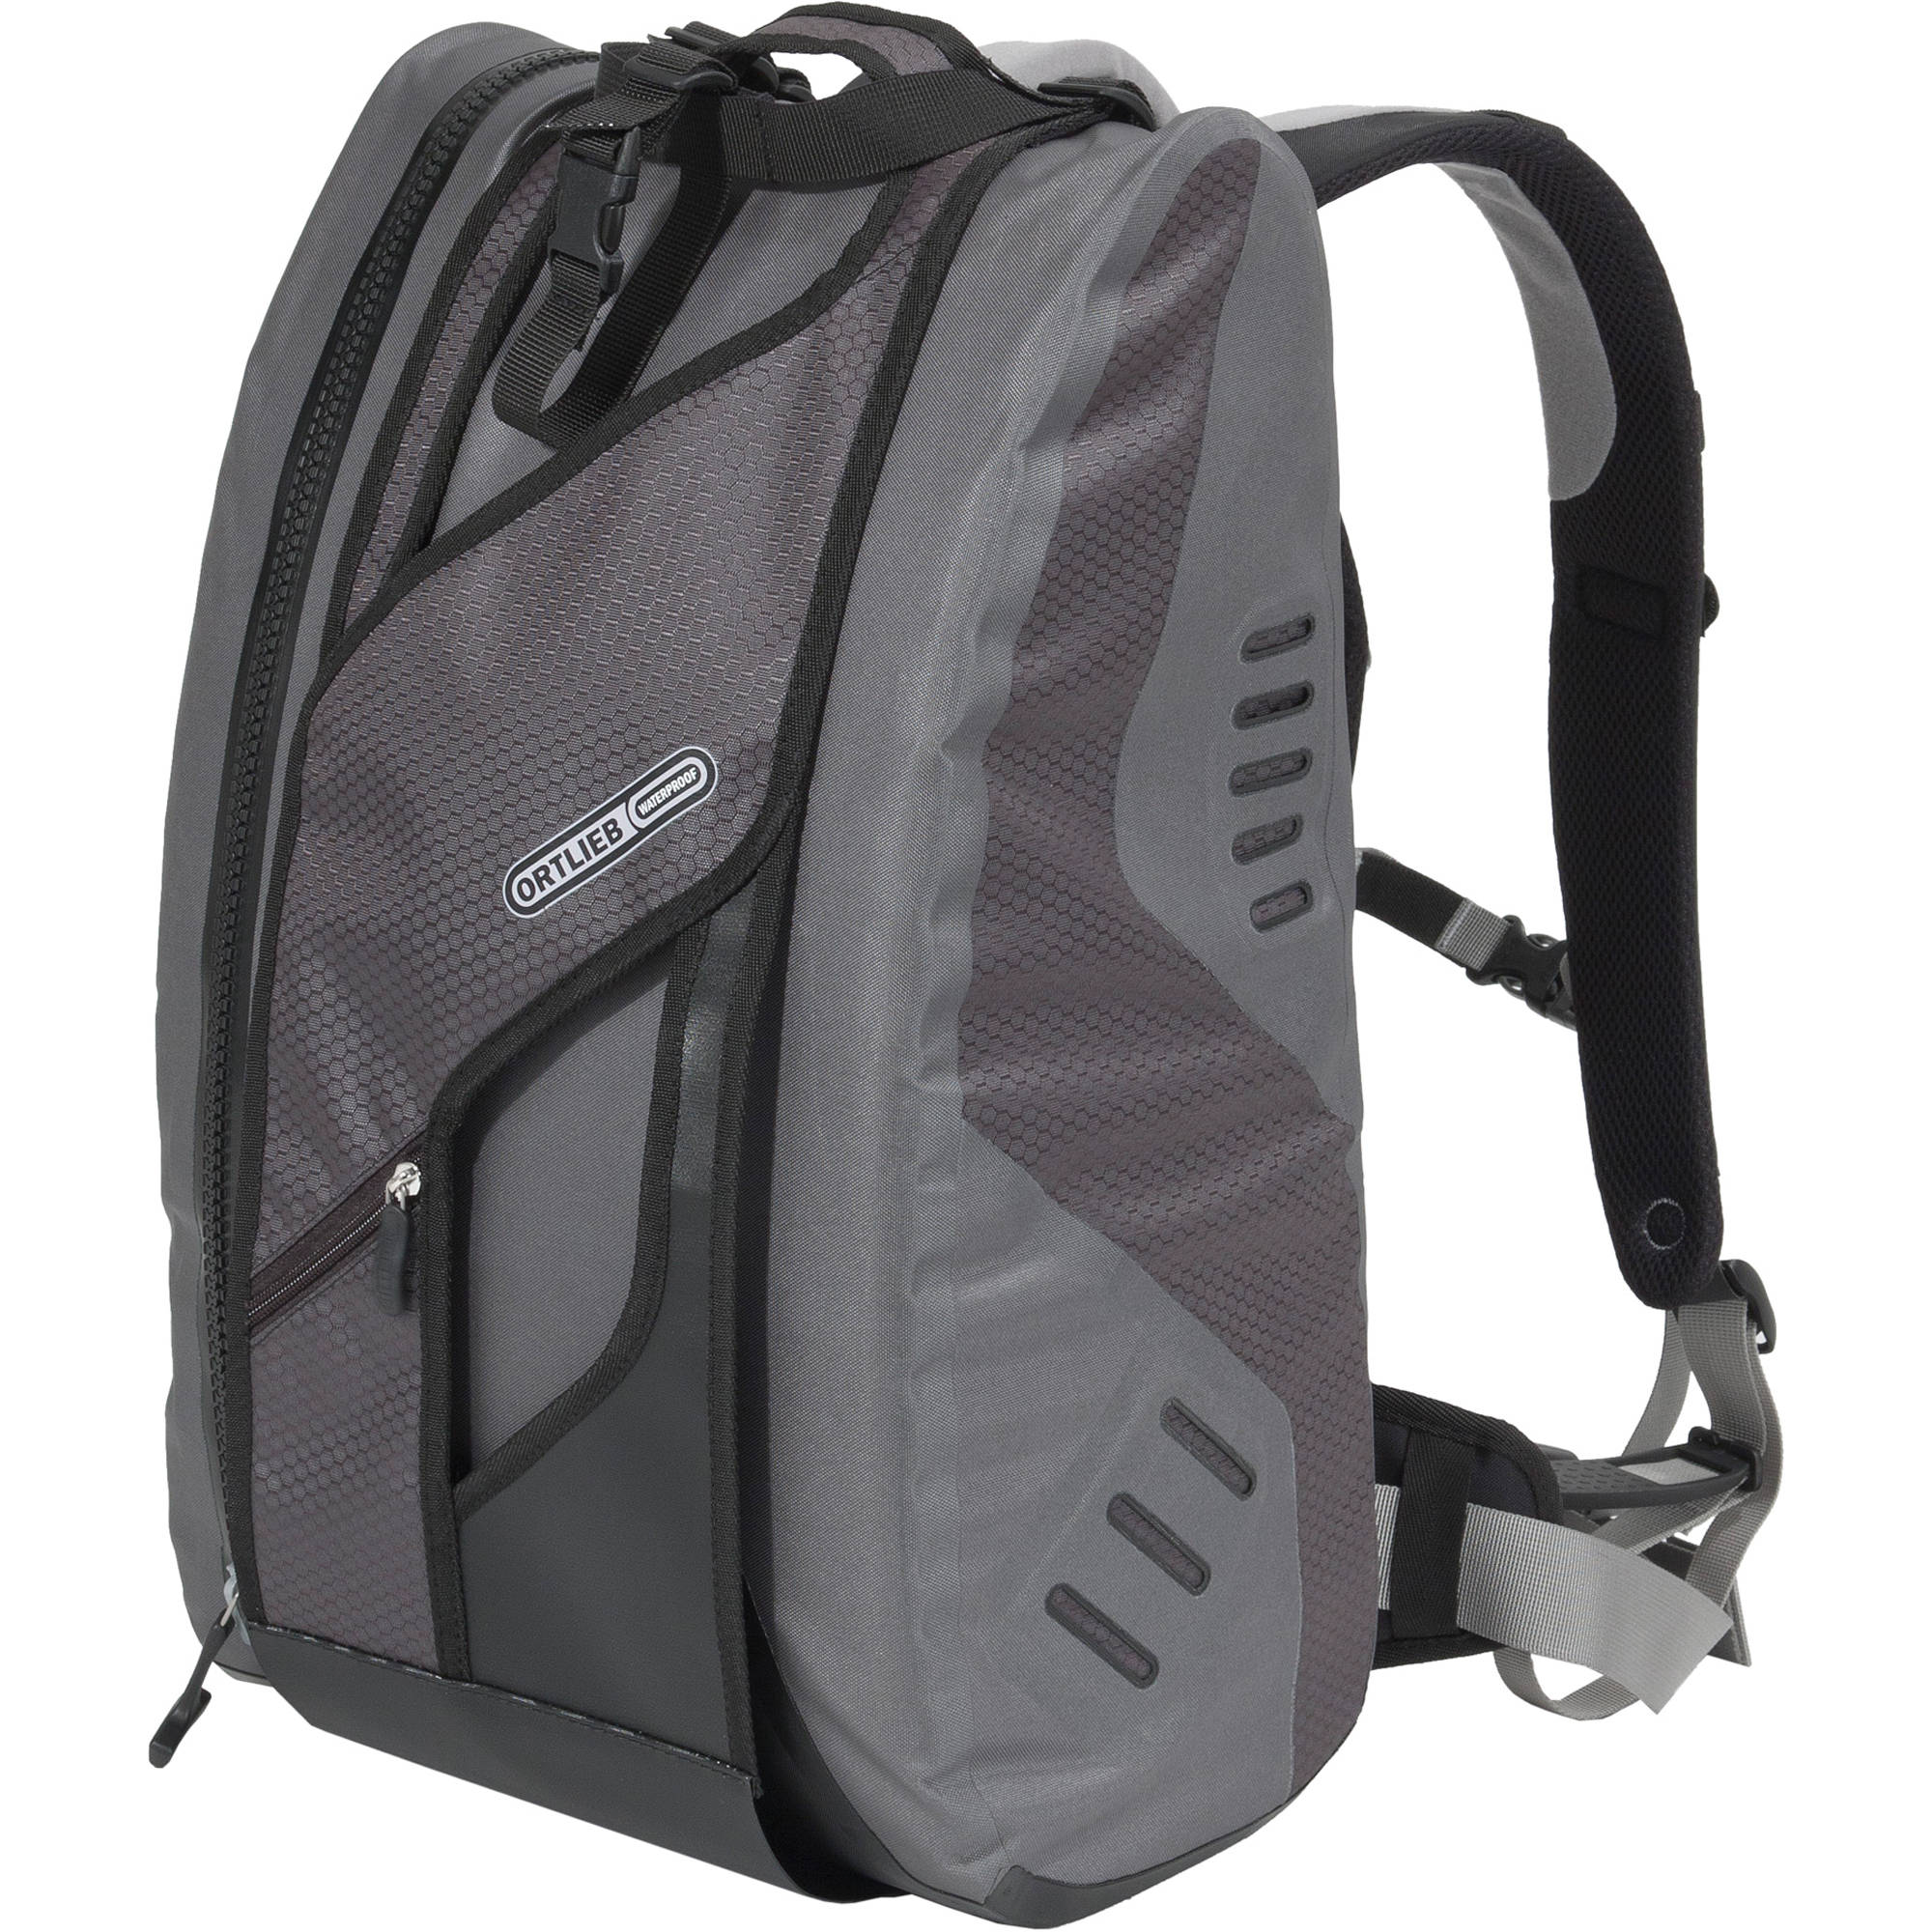 Waterproof Day Backpack - Crazy Backpacks